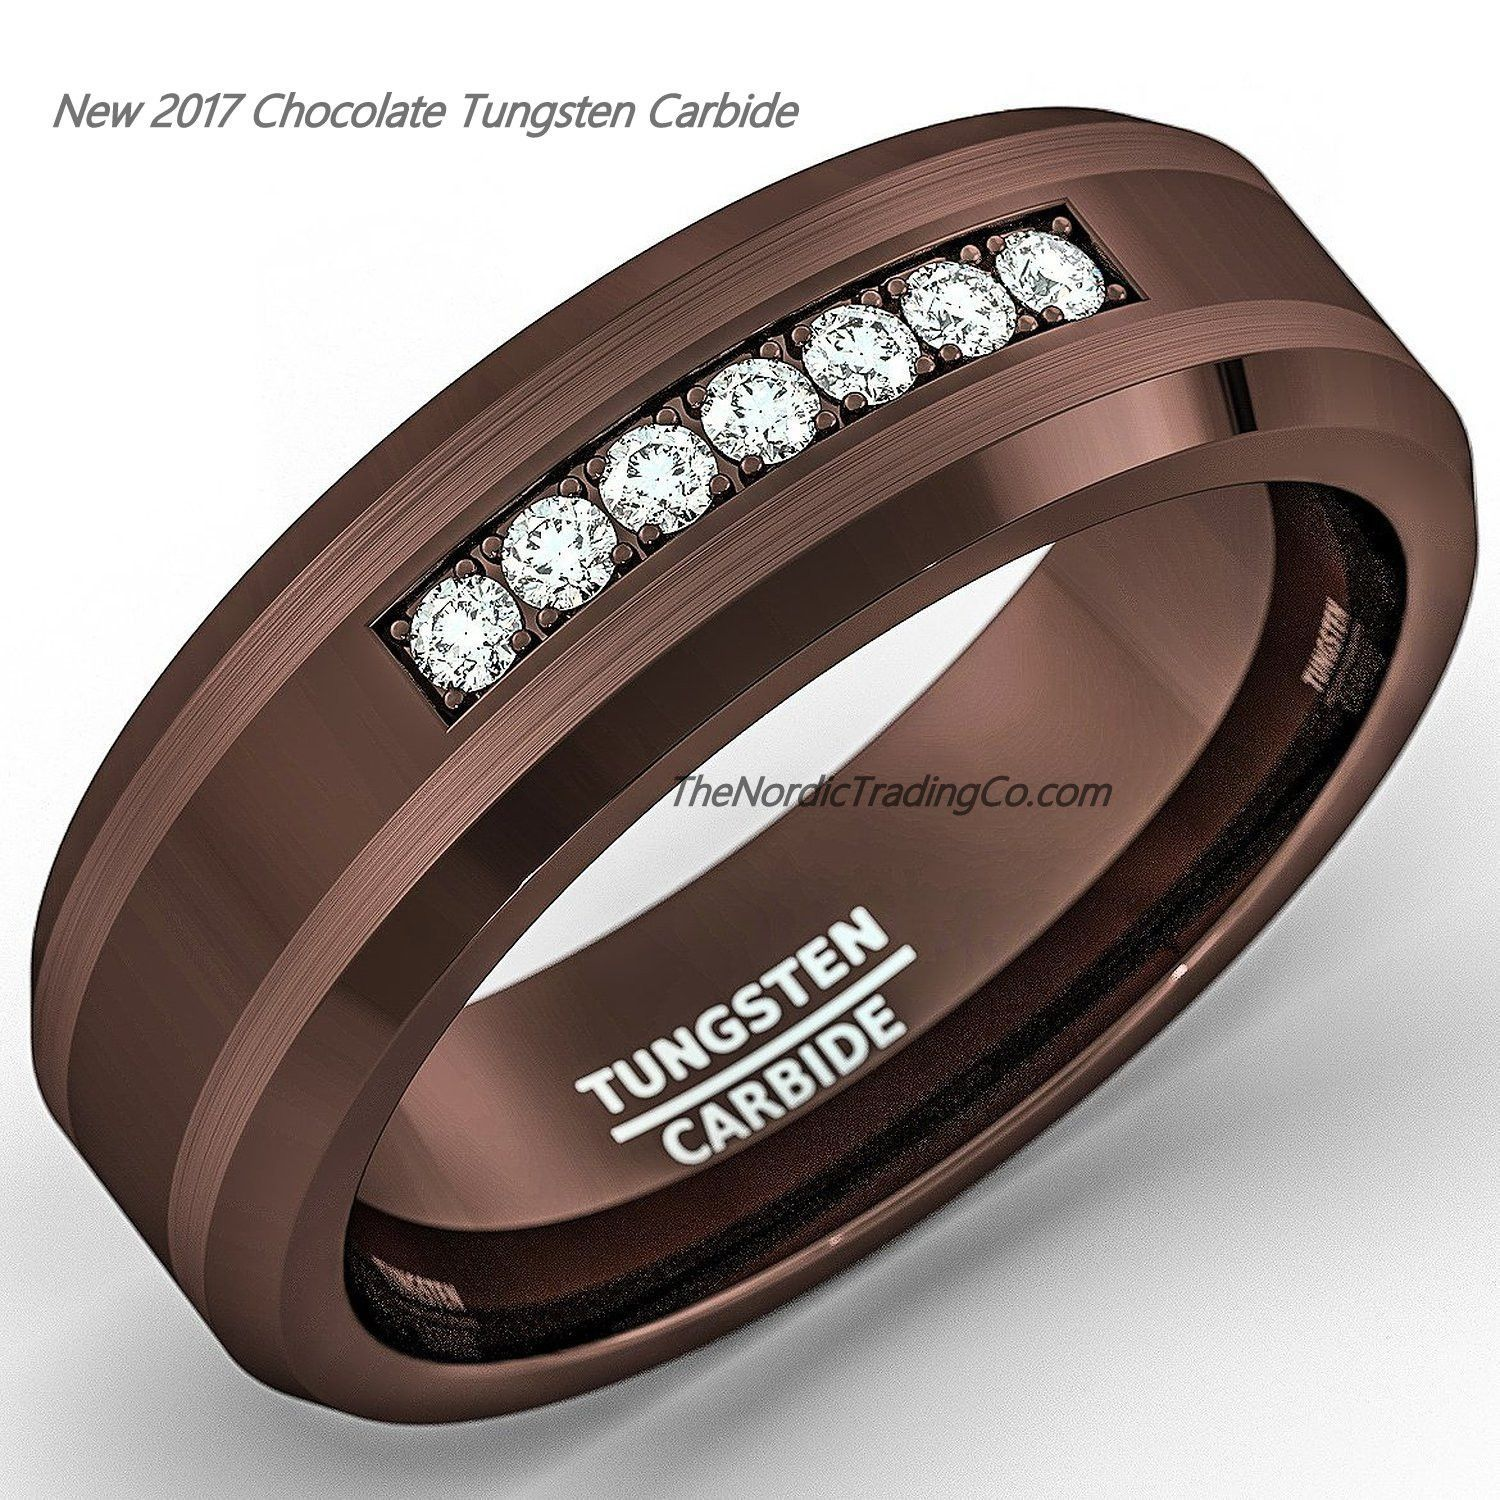 Coffe Brown Tungsten Carbide Menu0027s Wedding Ring Groomu0027s Band Jewelry Gifts Him  Men Anniversary Birthday